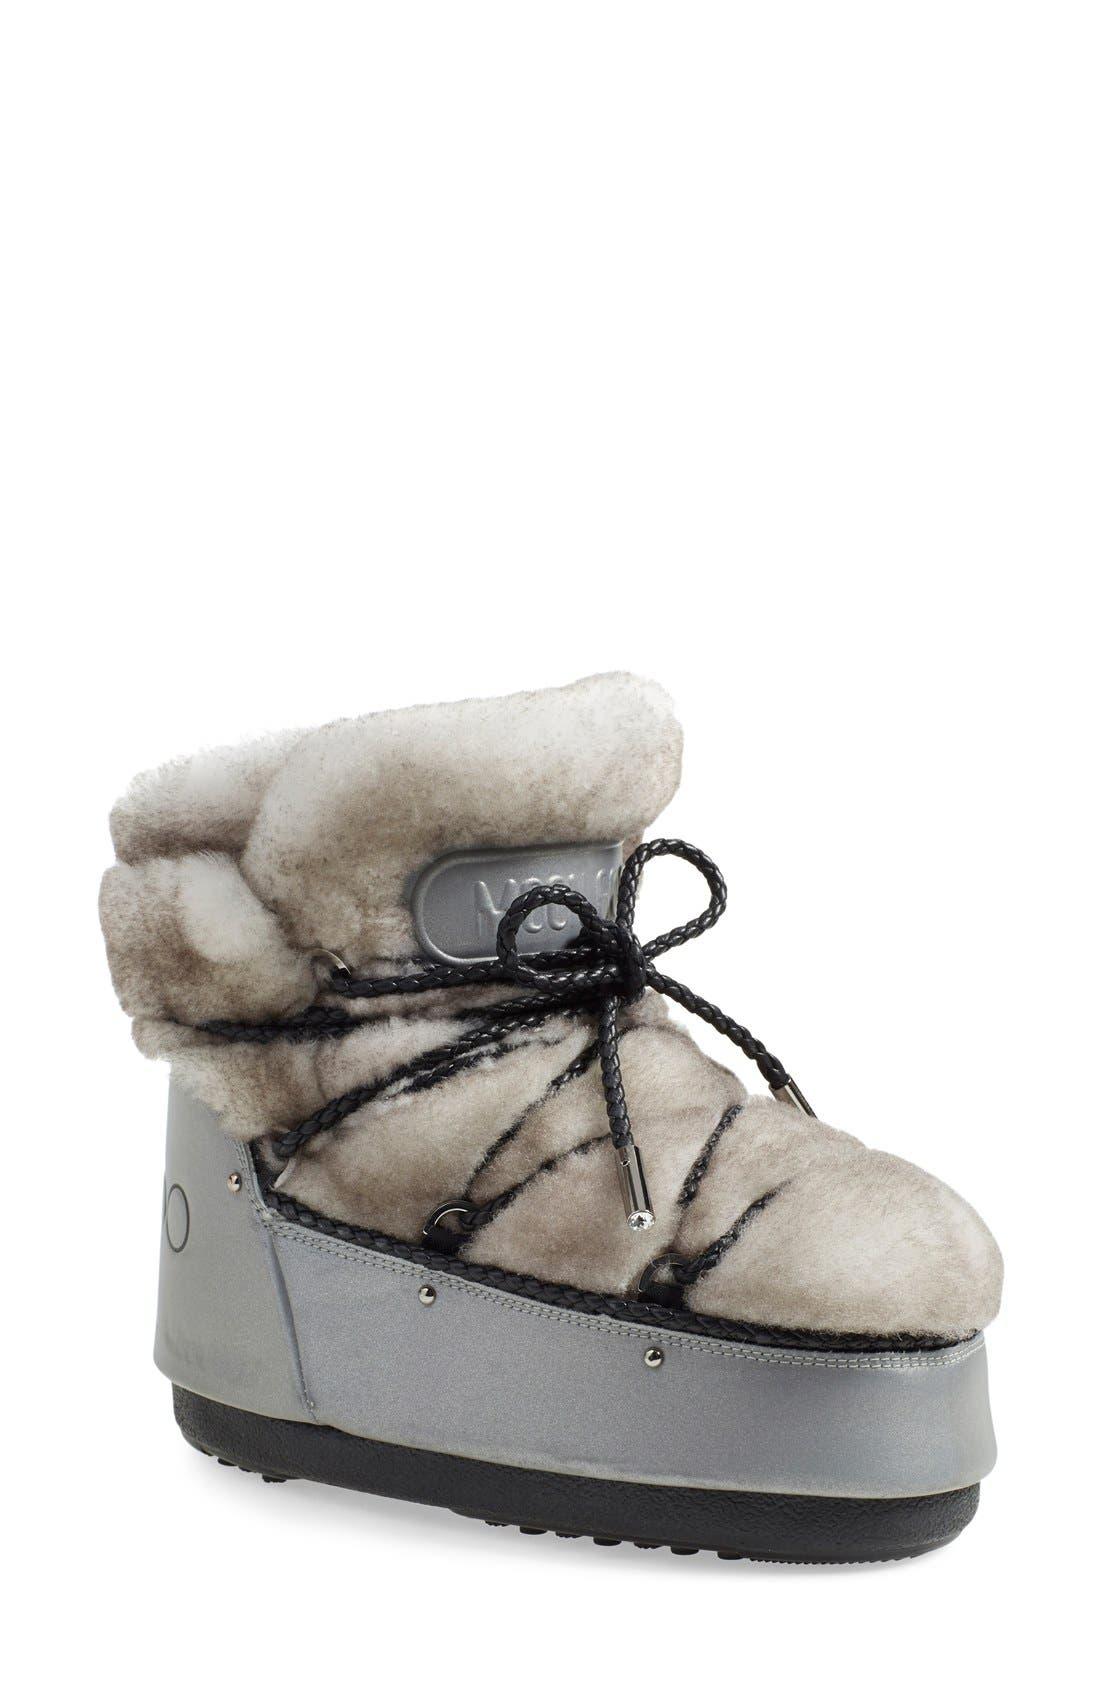 free shipping low shipping Jimmy Choo x Moon Boot Shearling-Trimmed Booties outlet locations sale online xZaREz